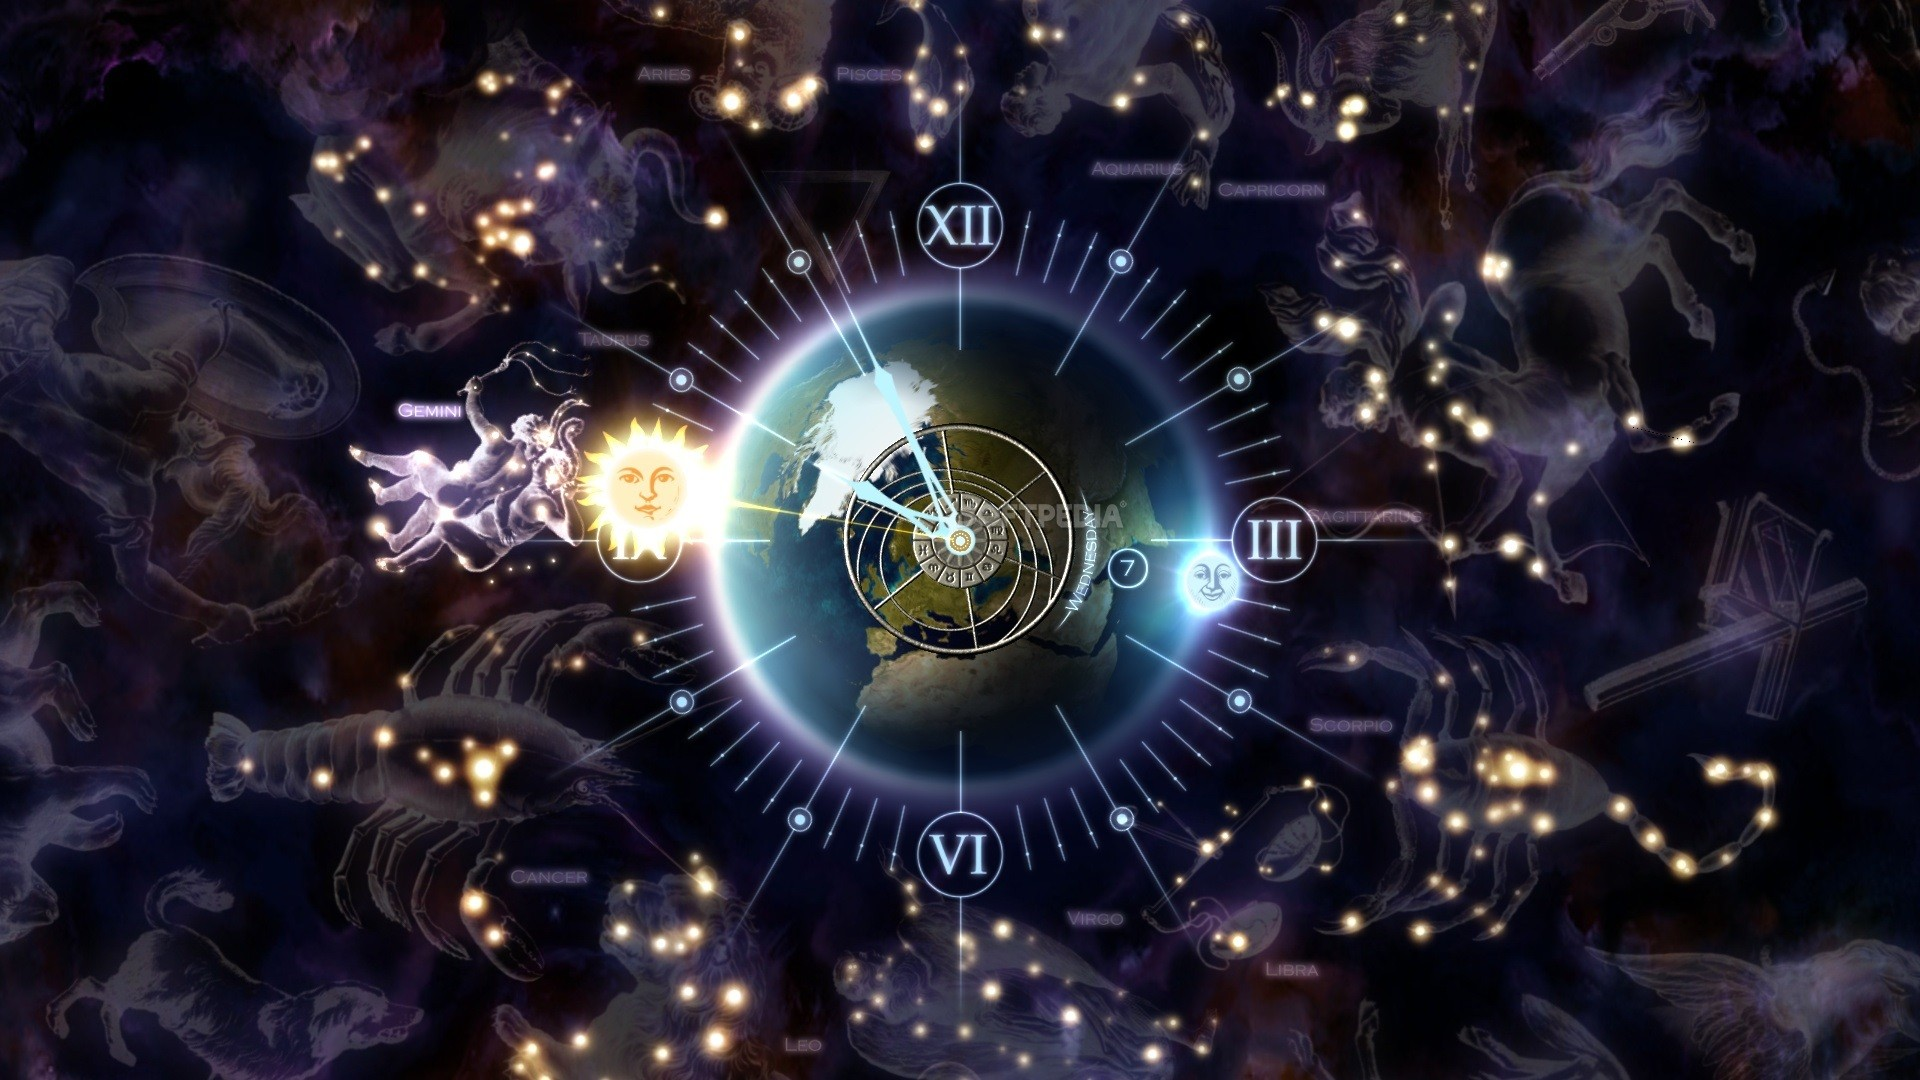 Download Zodiac Clock 3D Screensaver 1 1 Build 8